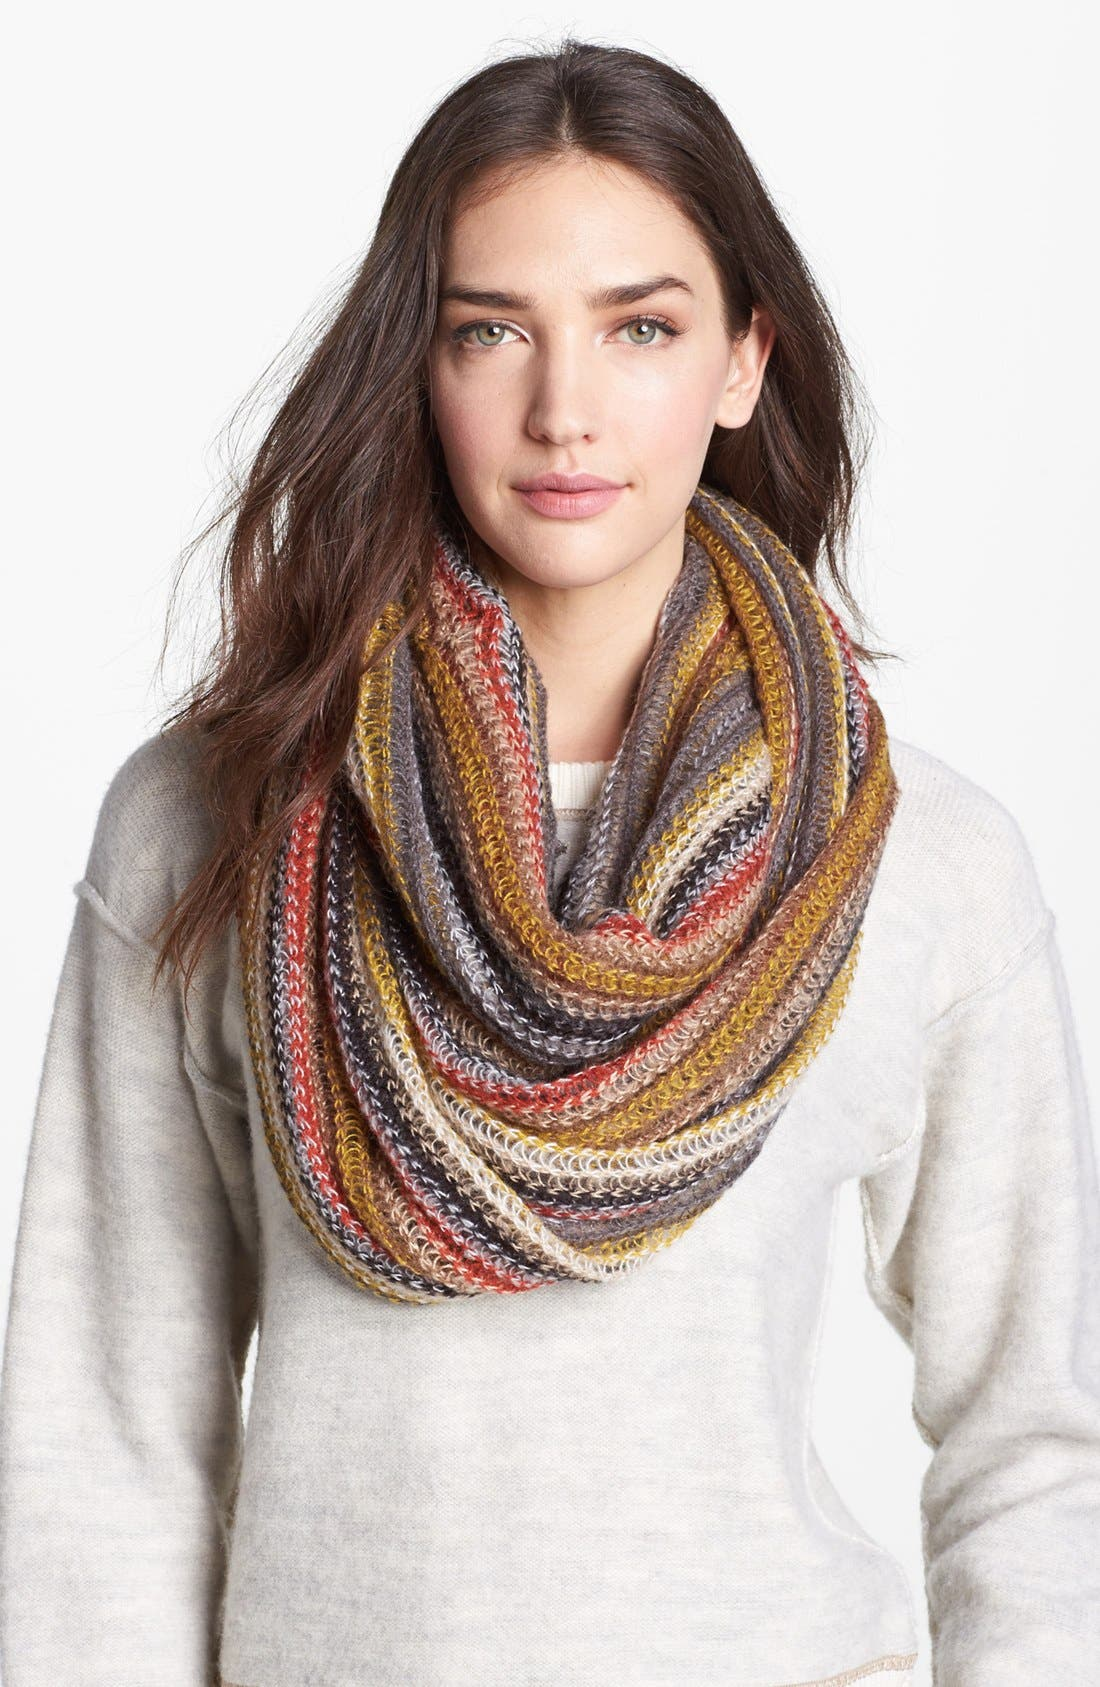 Alternate Image 1 Selected - Echo 'Fuzzy Stripe' Infinity Scarf